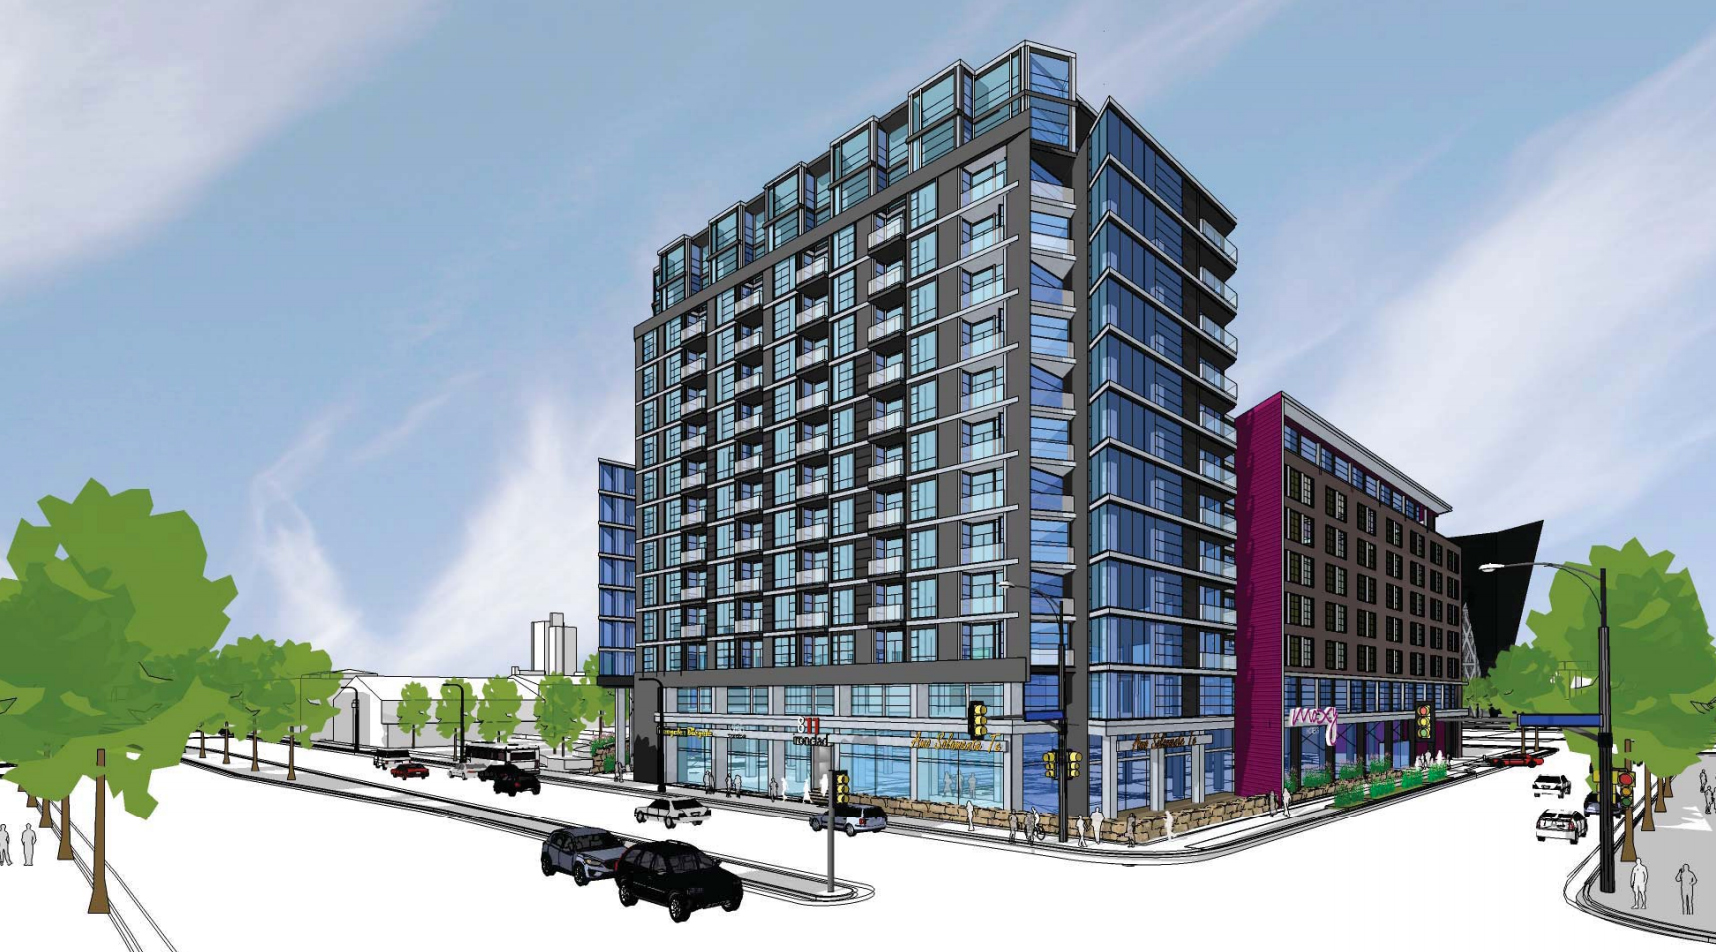 IRON CLAD   MIXED-USE (COMMERCIAL, HOSPITALITY, RESIDENTIAL)  811 WASHINGTON AVENUE SOUTH